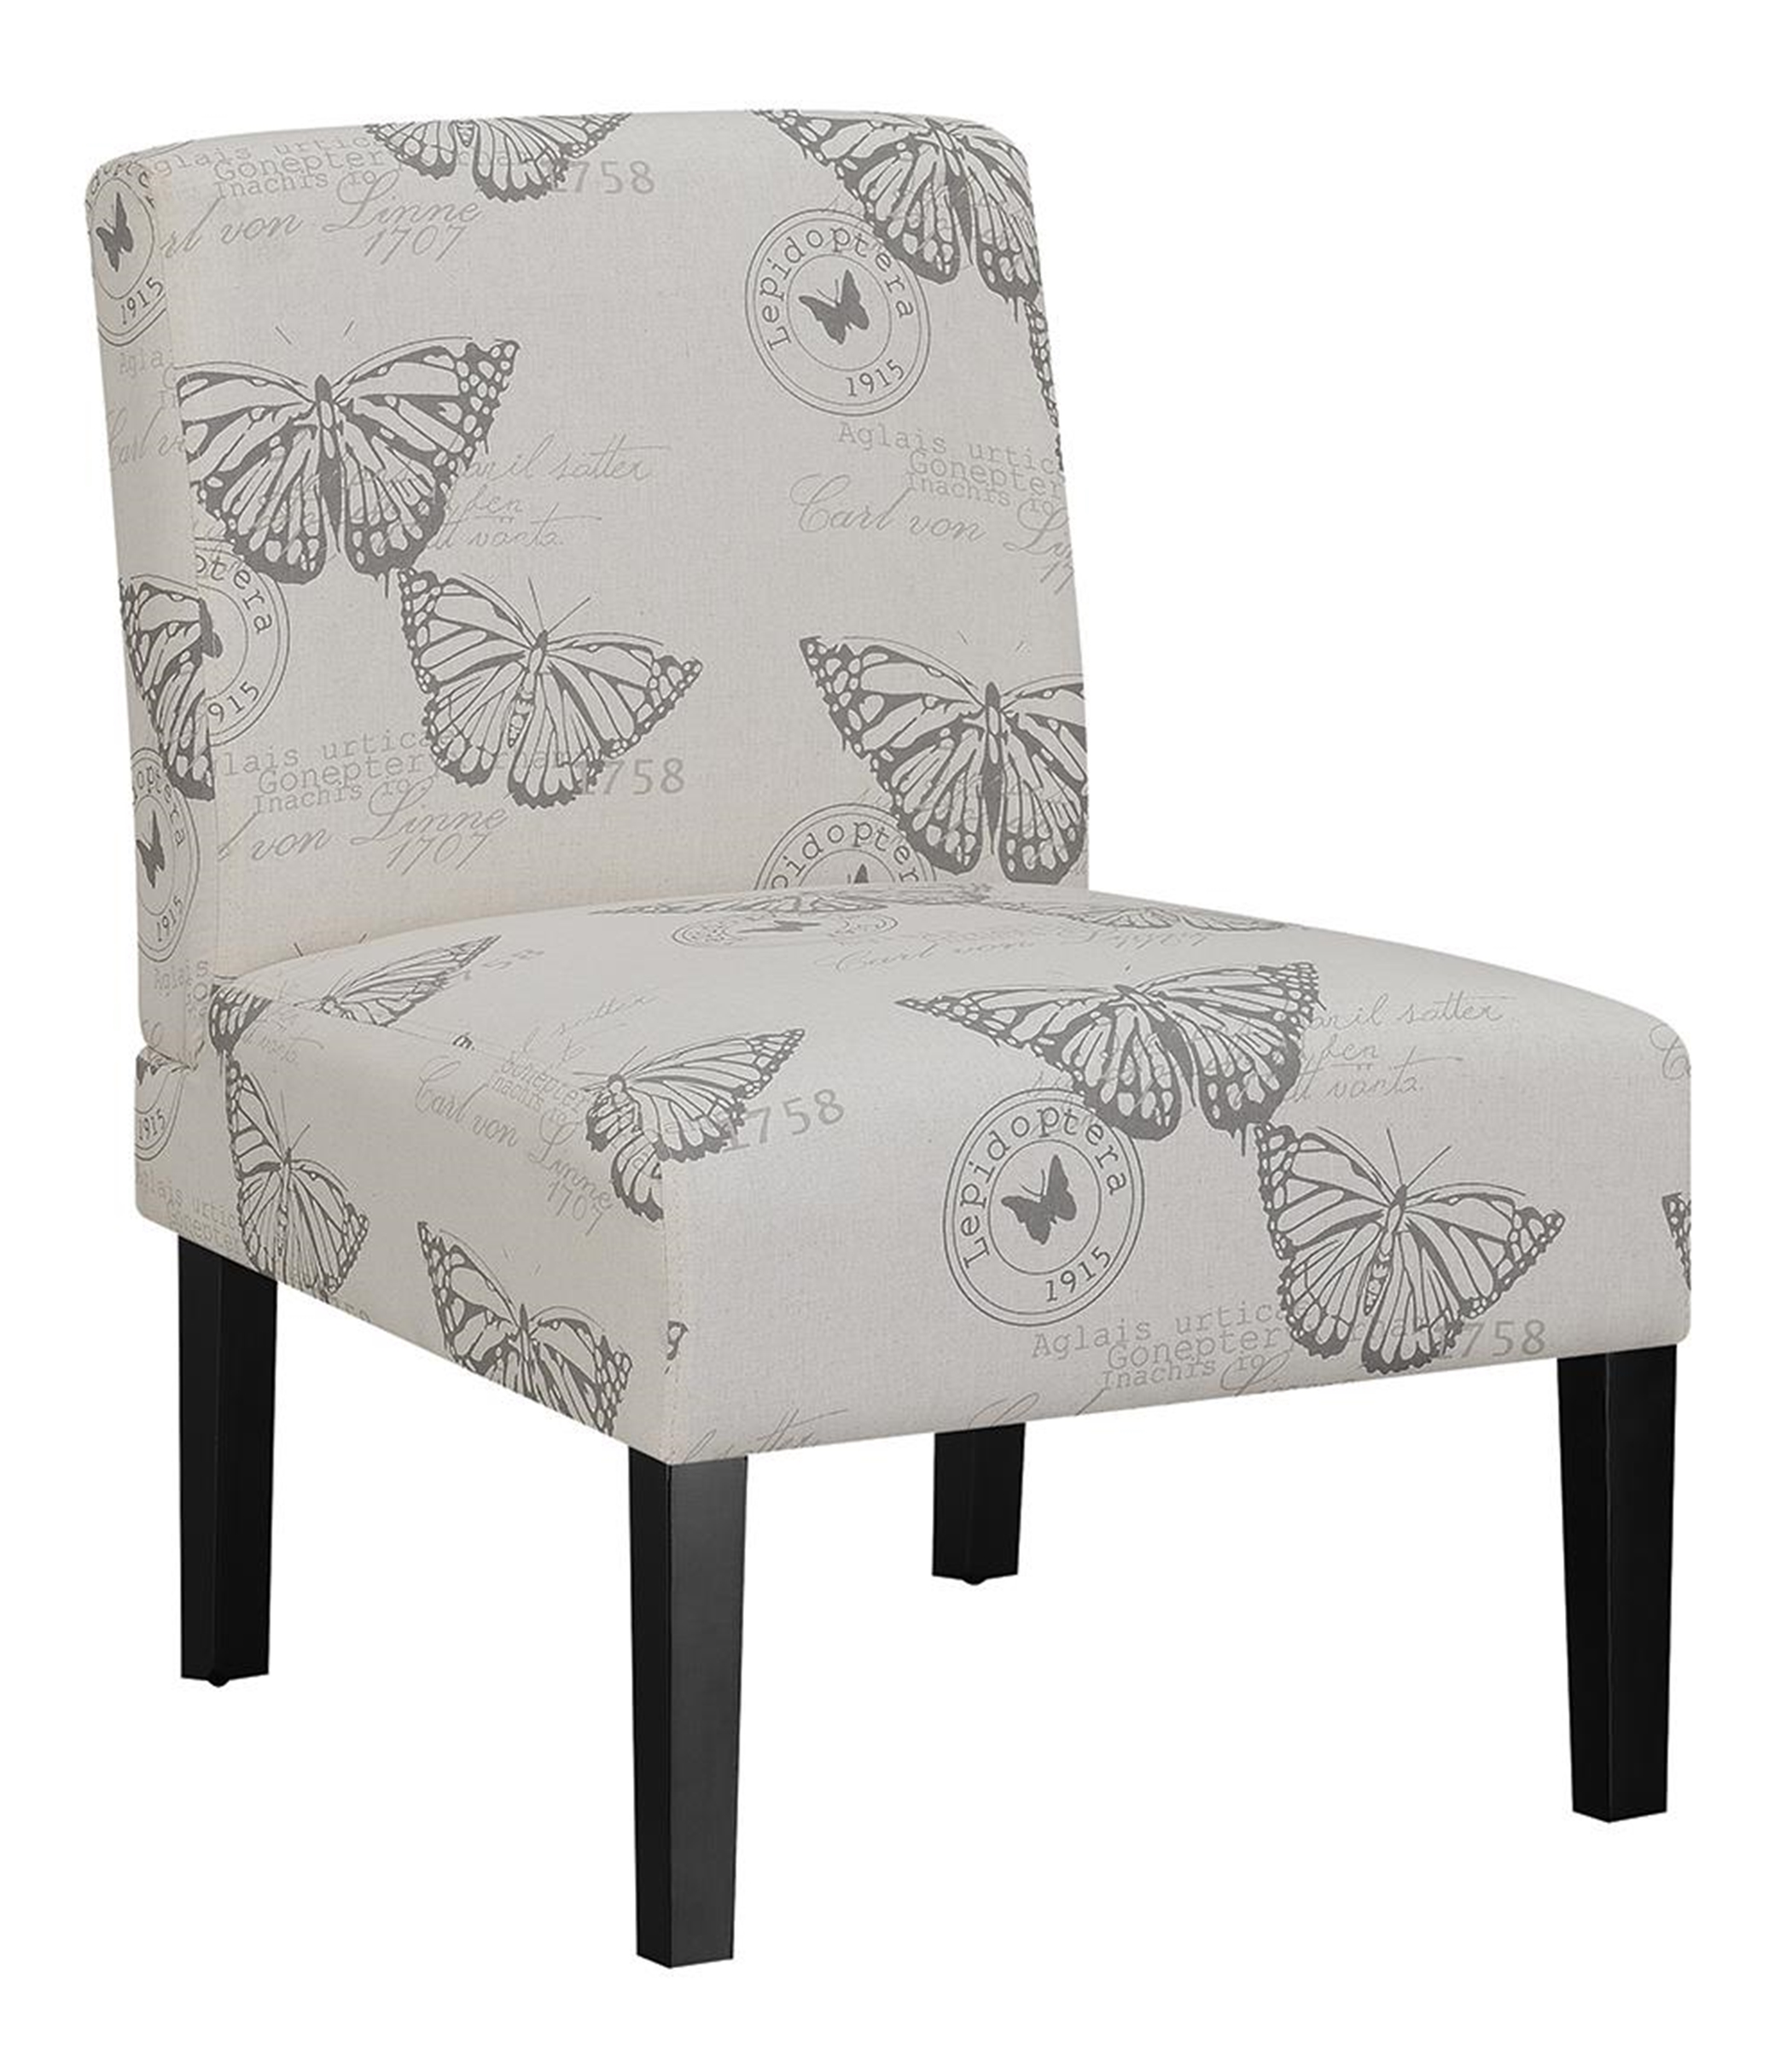 905394 - Accent Chair